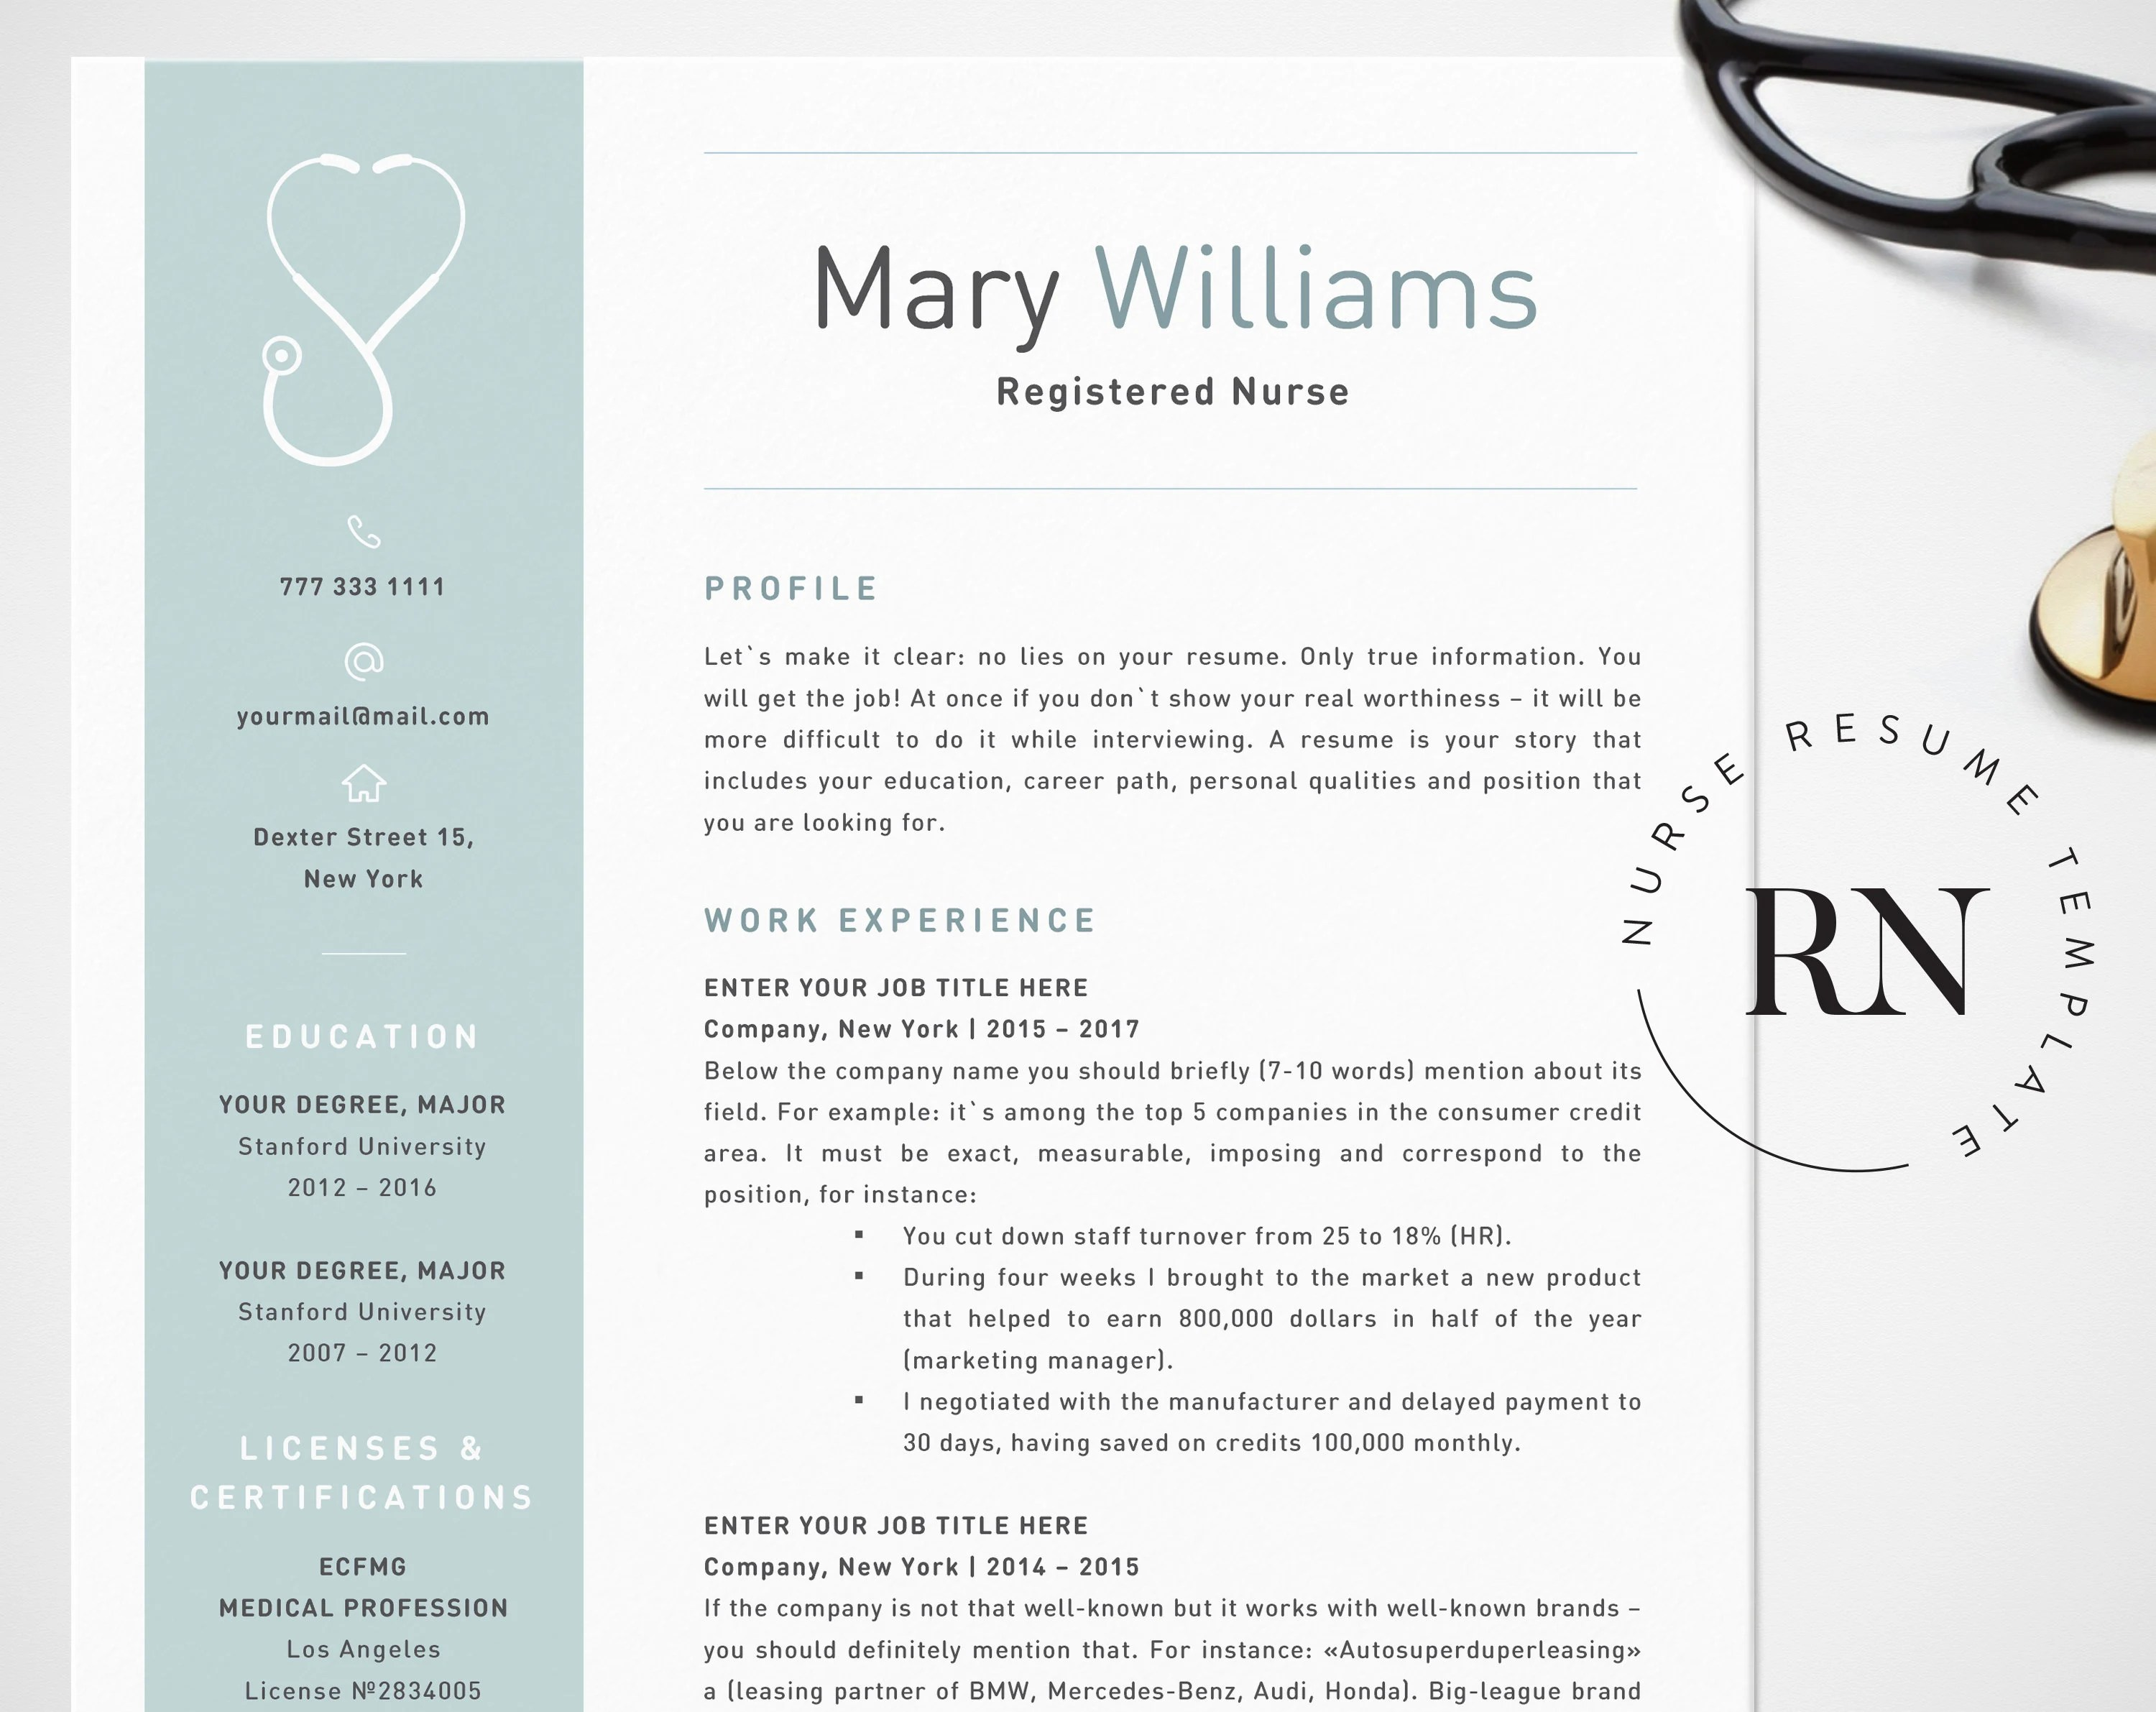 Nurse Resume Template for Word Medical Resume Word Nurse CV Etsy